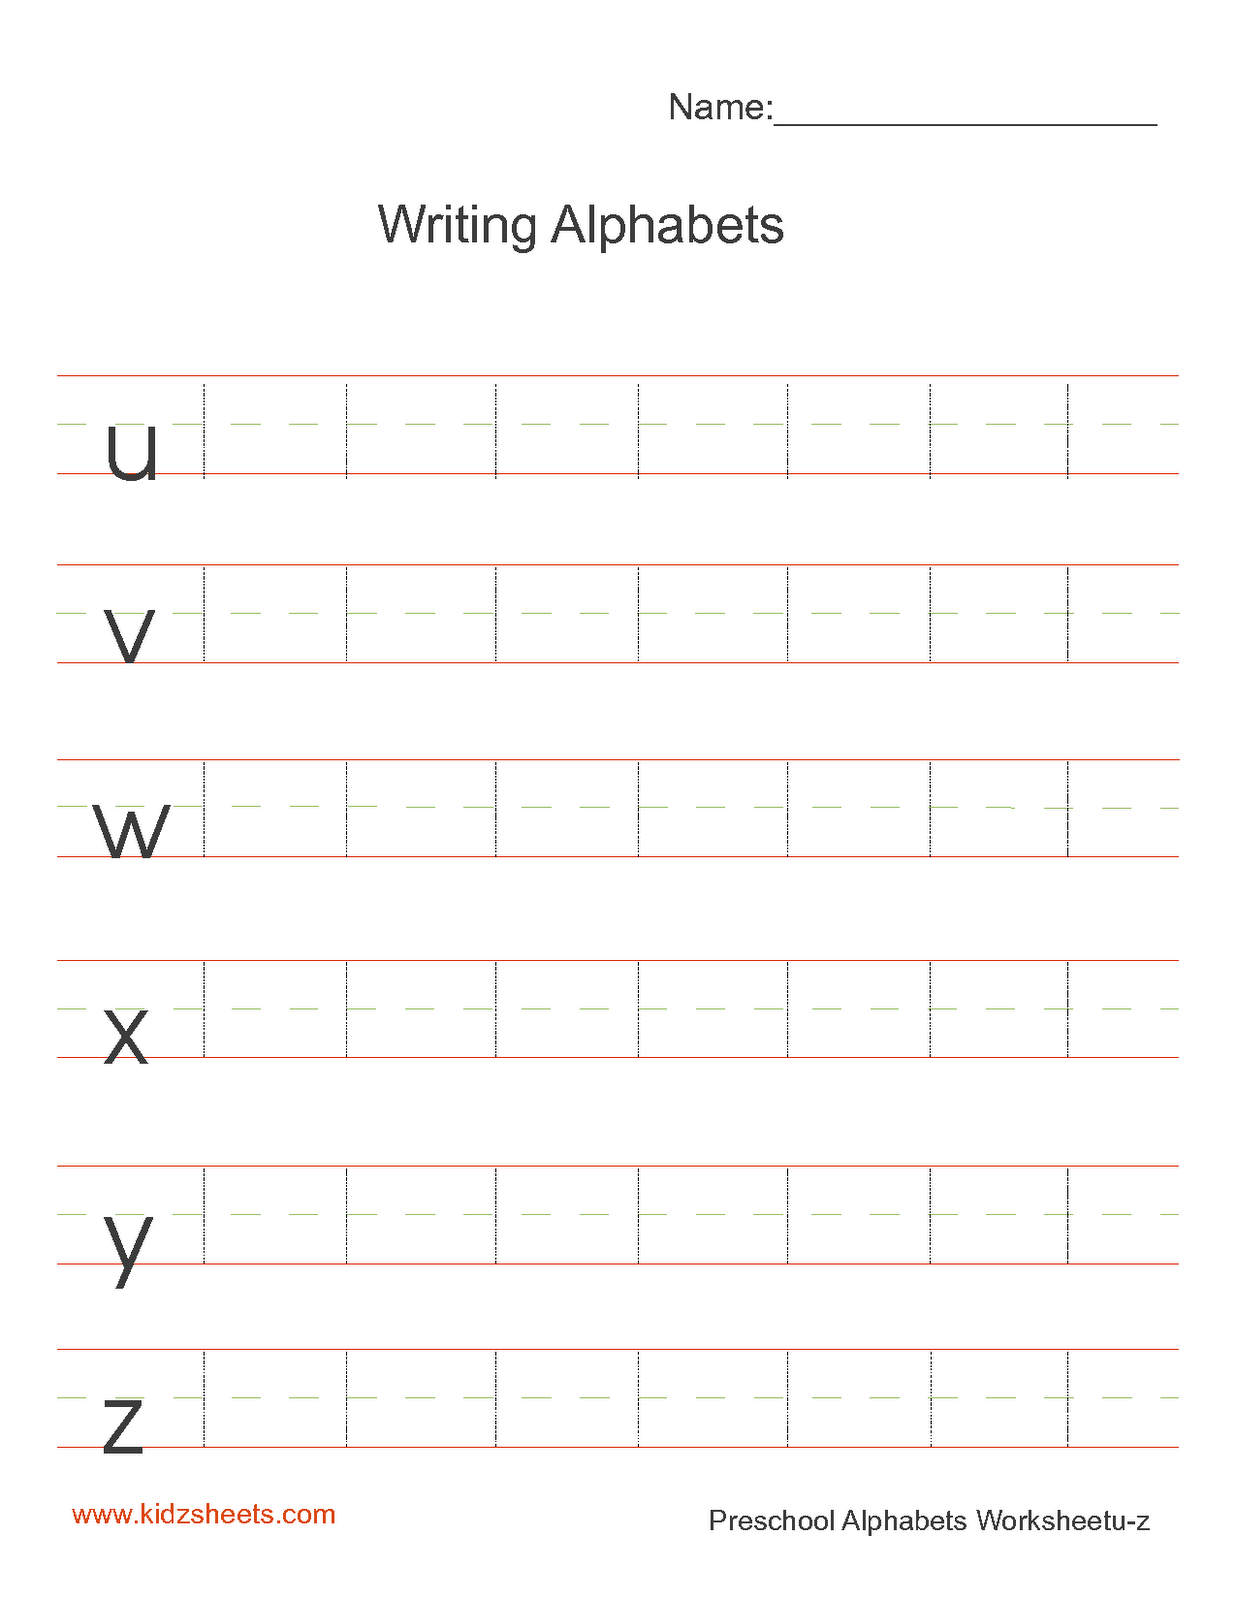 Kidz Worksheets Preschool Writing Alphabets Worksheet5